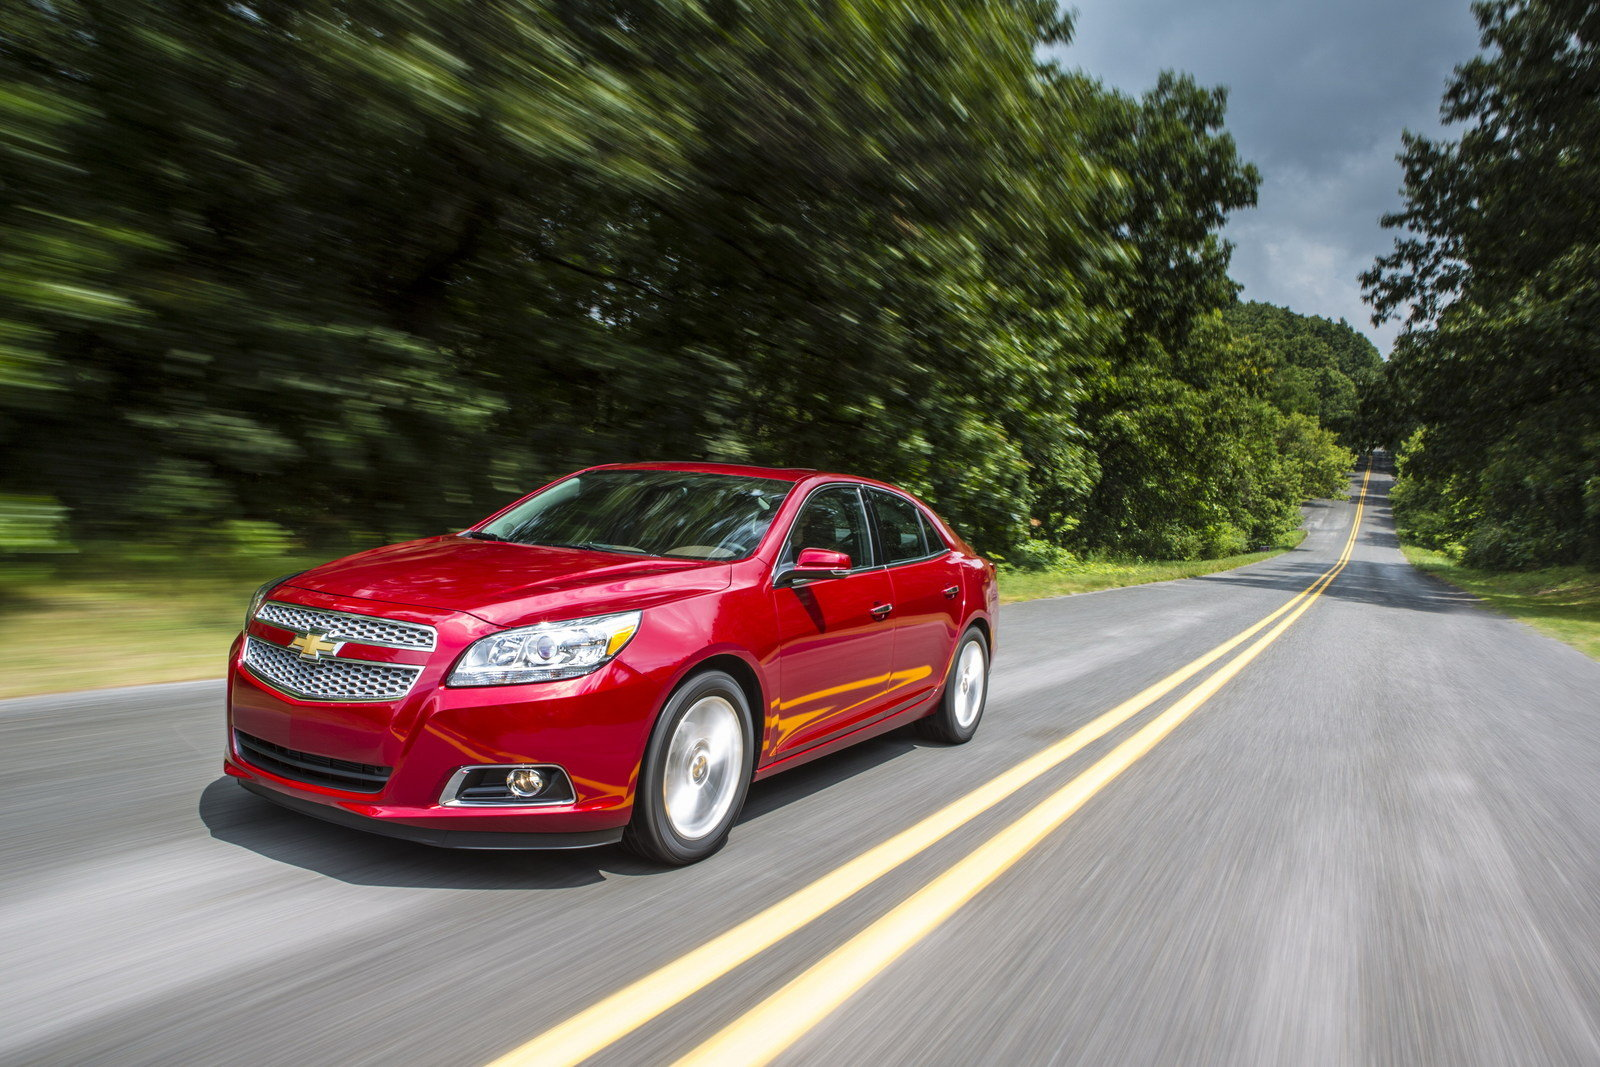 Malibu 2013 chevrolet malibu vin : Chevrolet Malibu Reviews, Specs & Prices - Top Speed